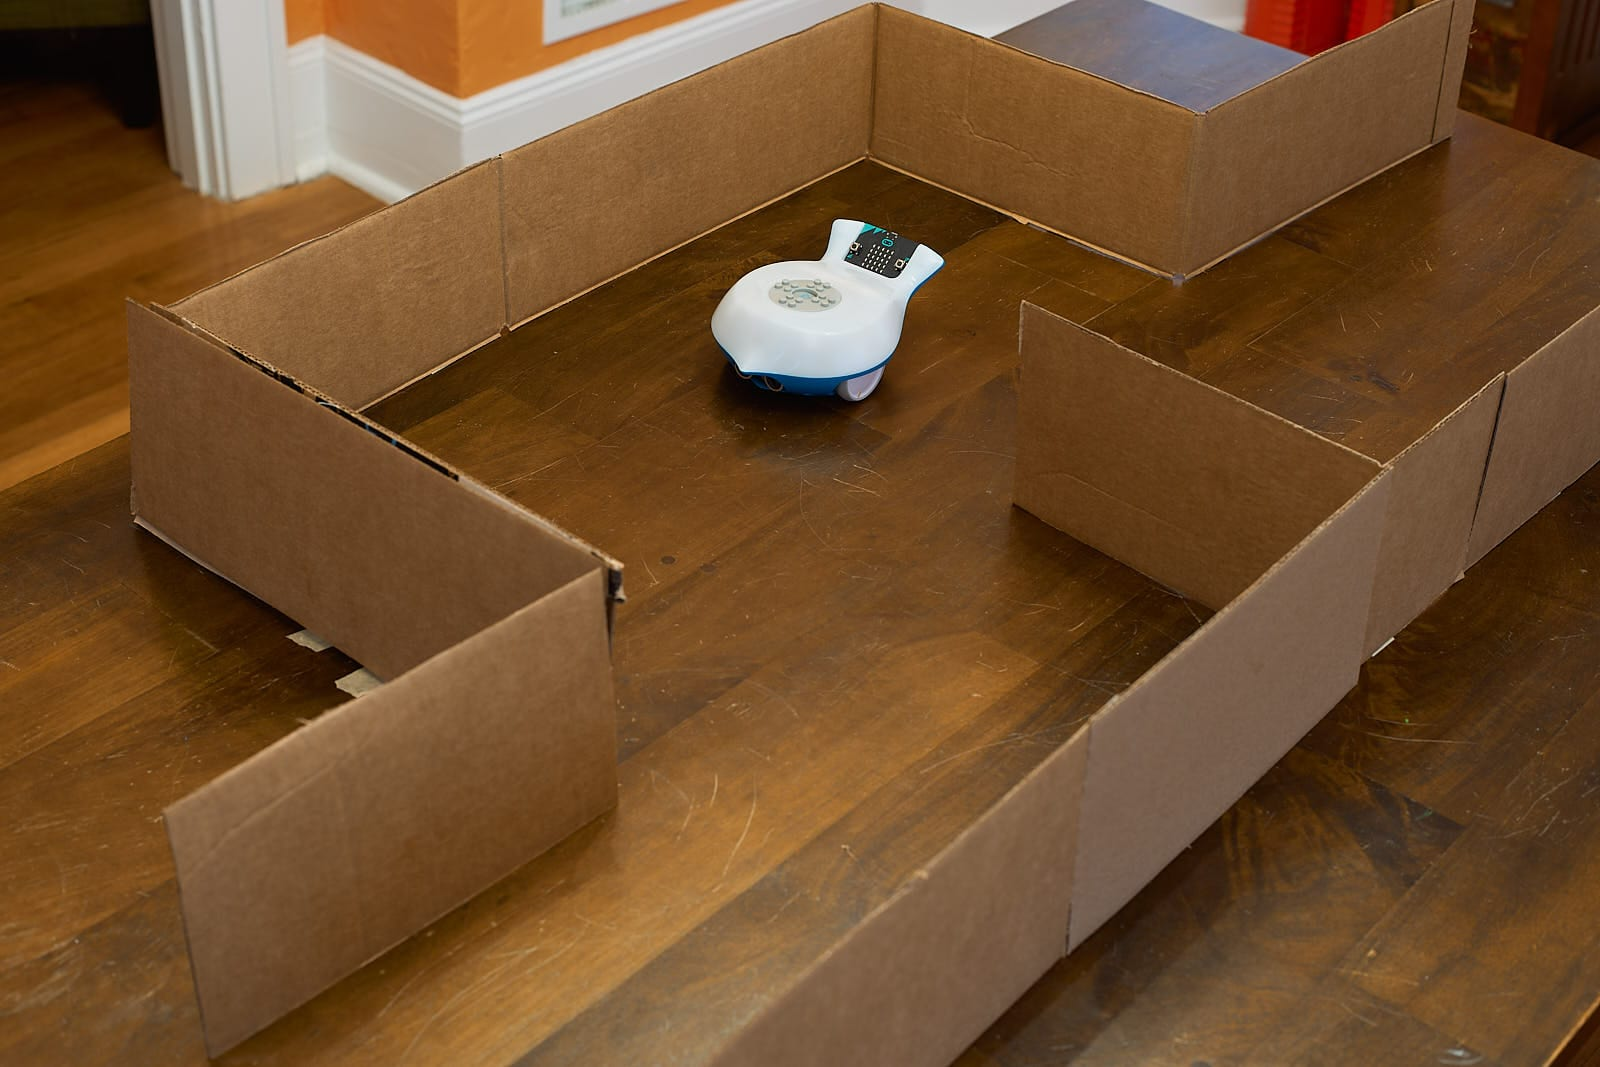 This picture shows a Finch in a cardboard maze.